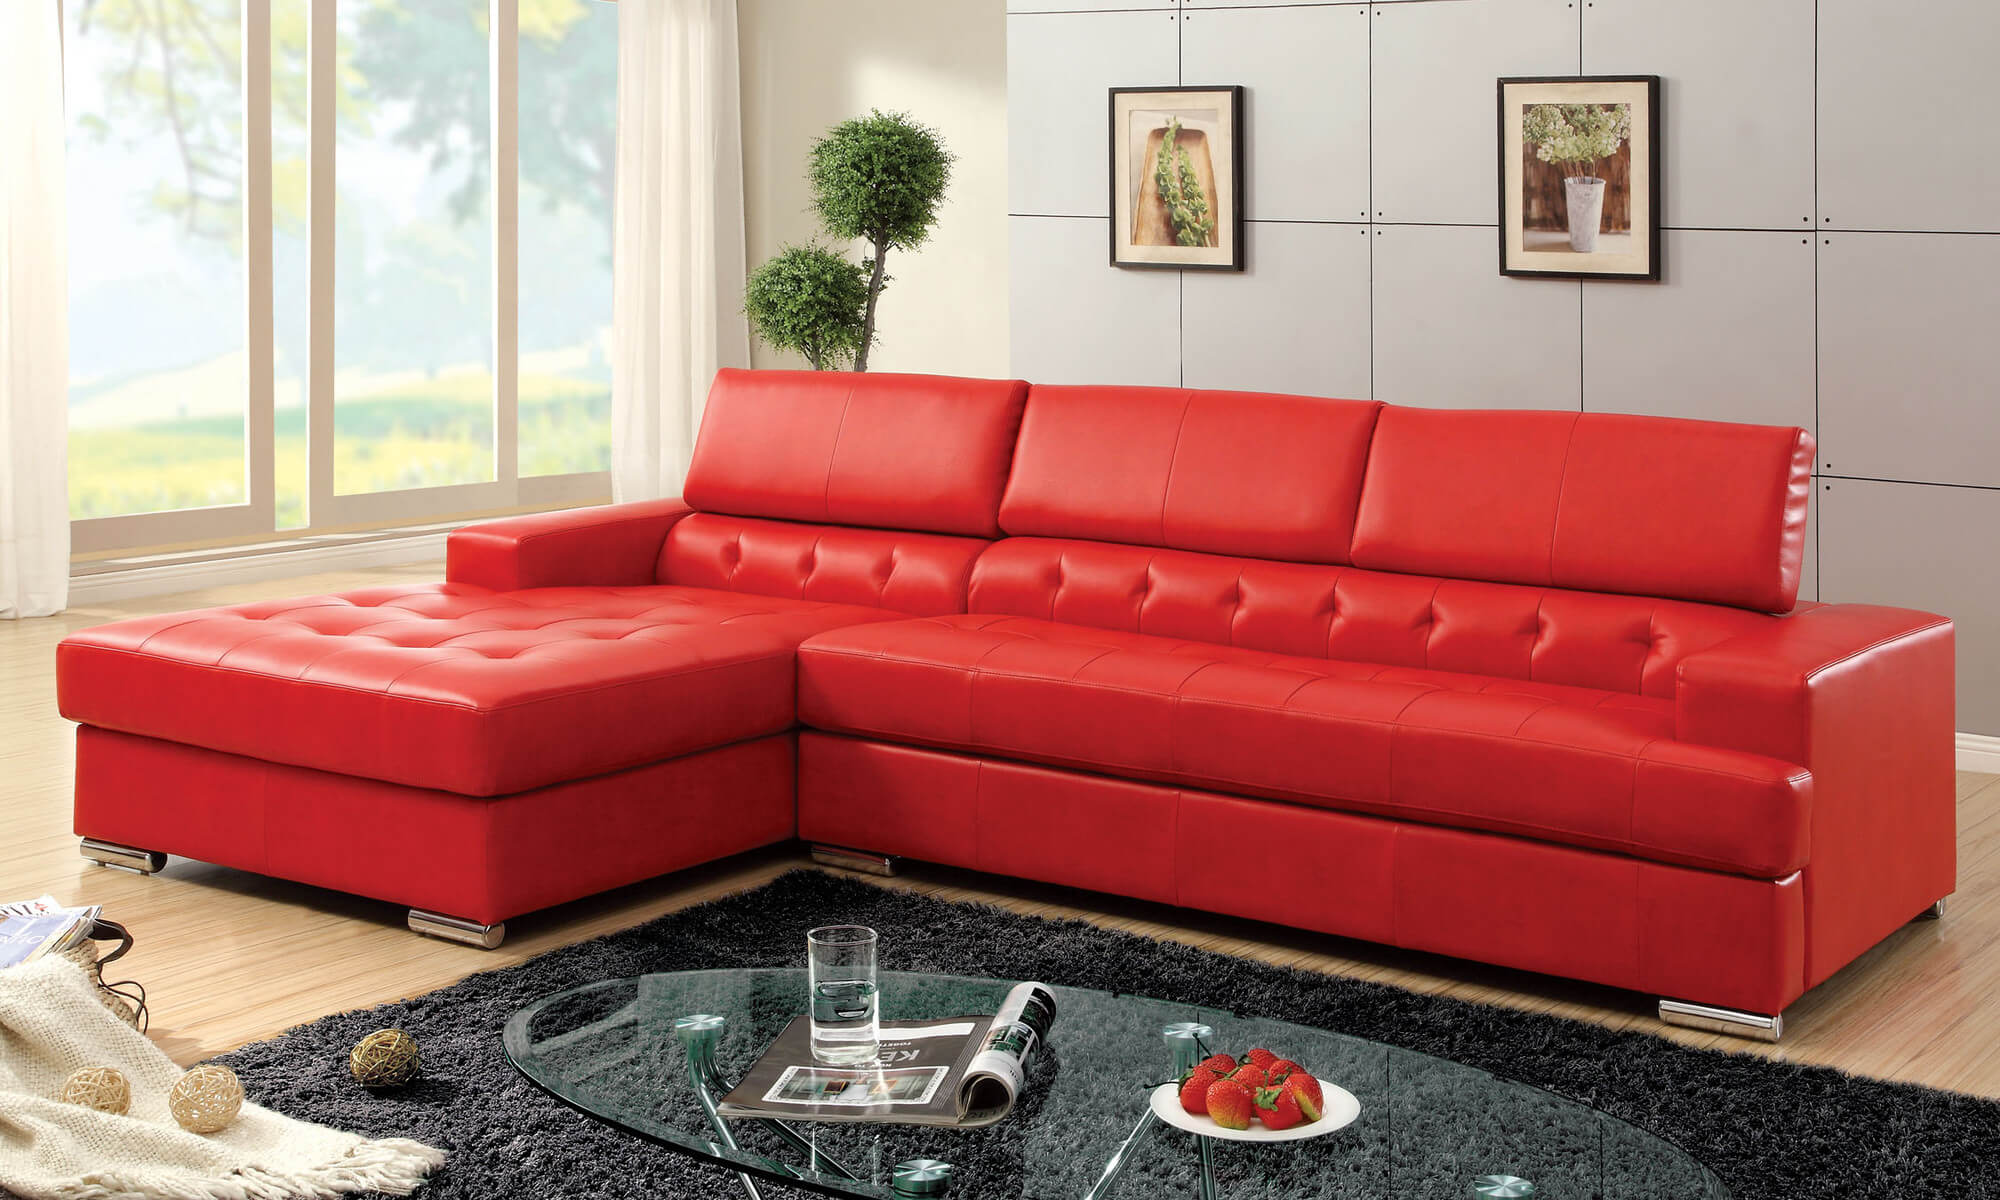 Popular Hokku Designs Red Leather Sectional with Partially Tufted Upholstery red sectional sofa